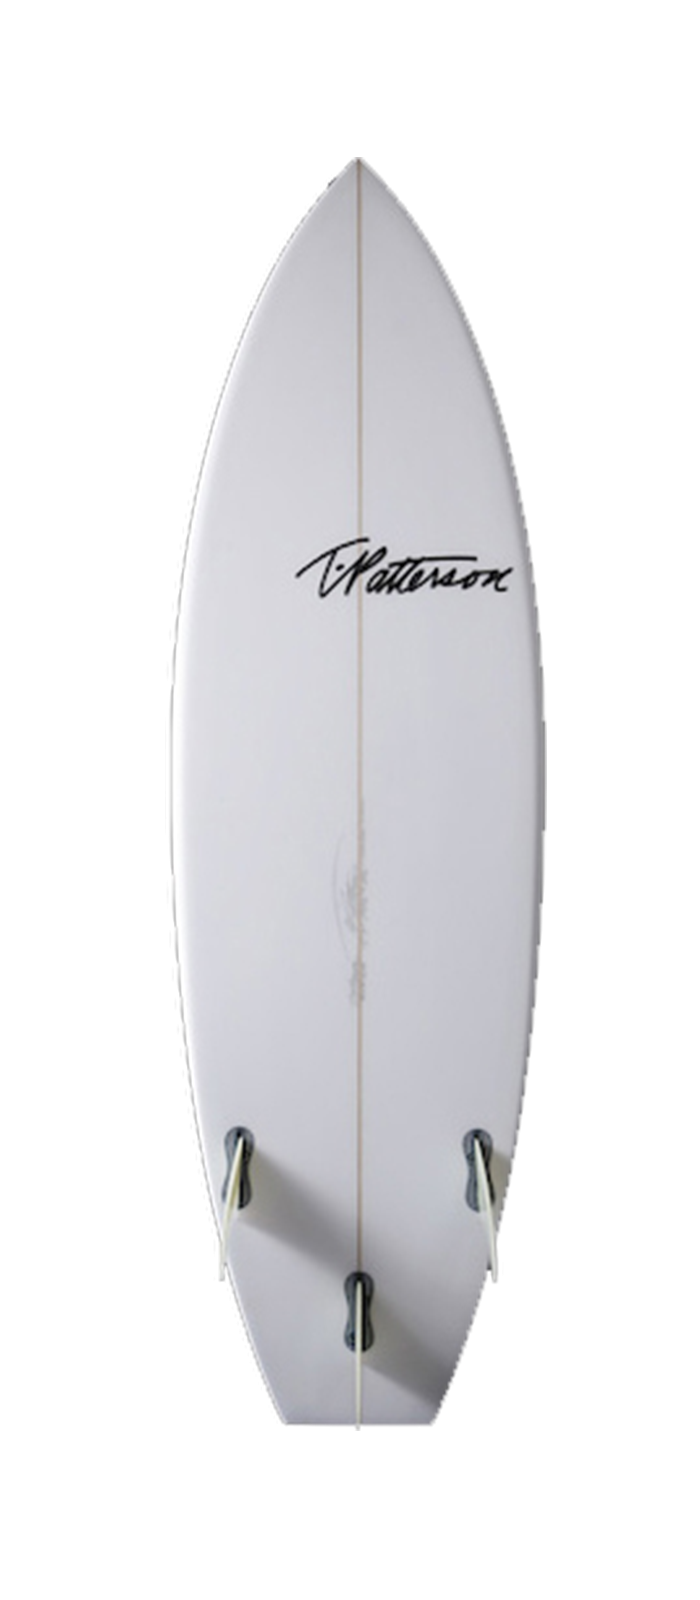 Chopped Clam surfboard model bottom